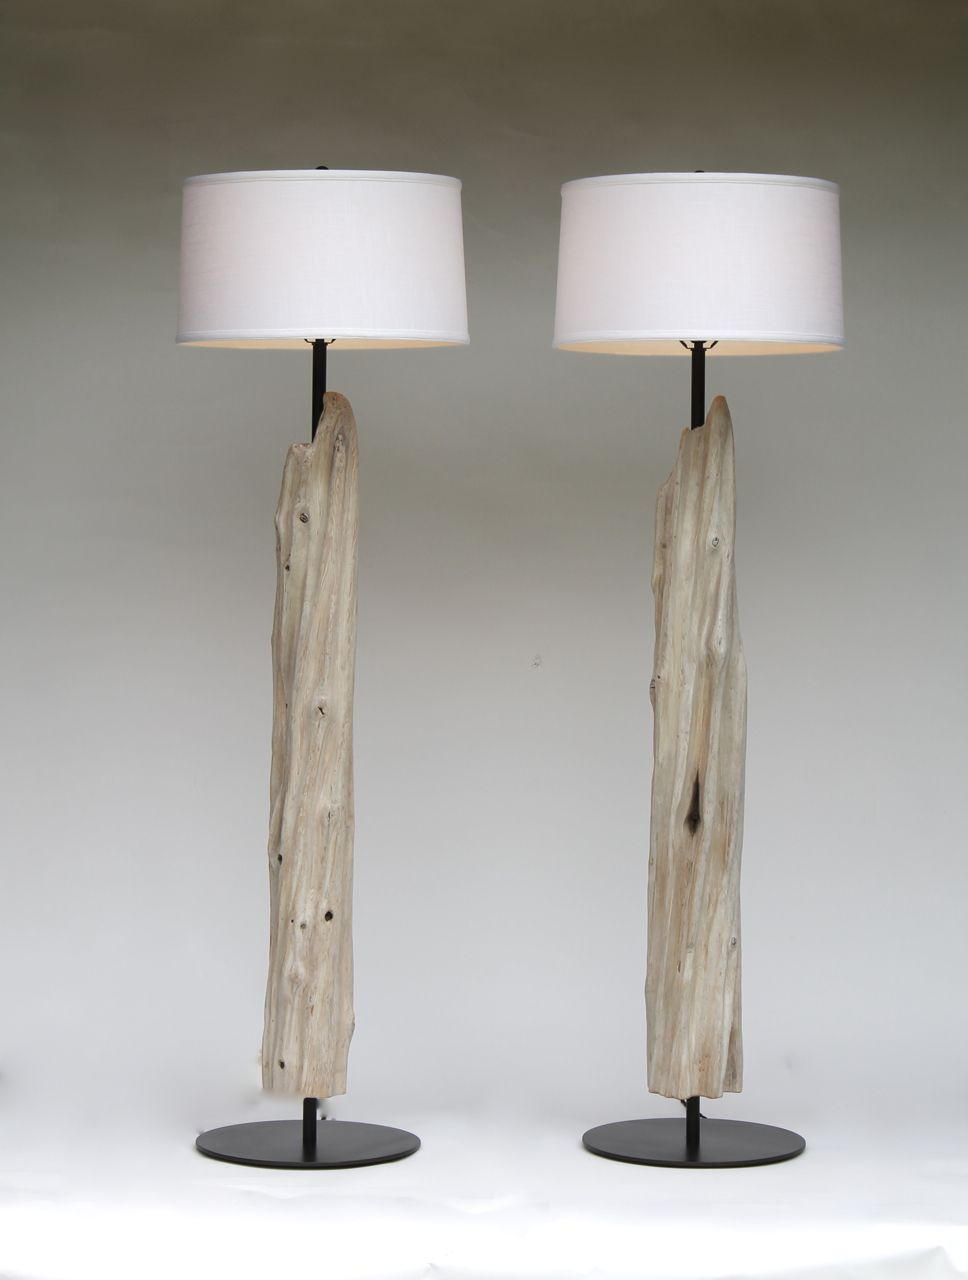 driftwood ikea hackers floor drift lamppost lamp wood